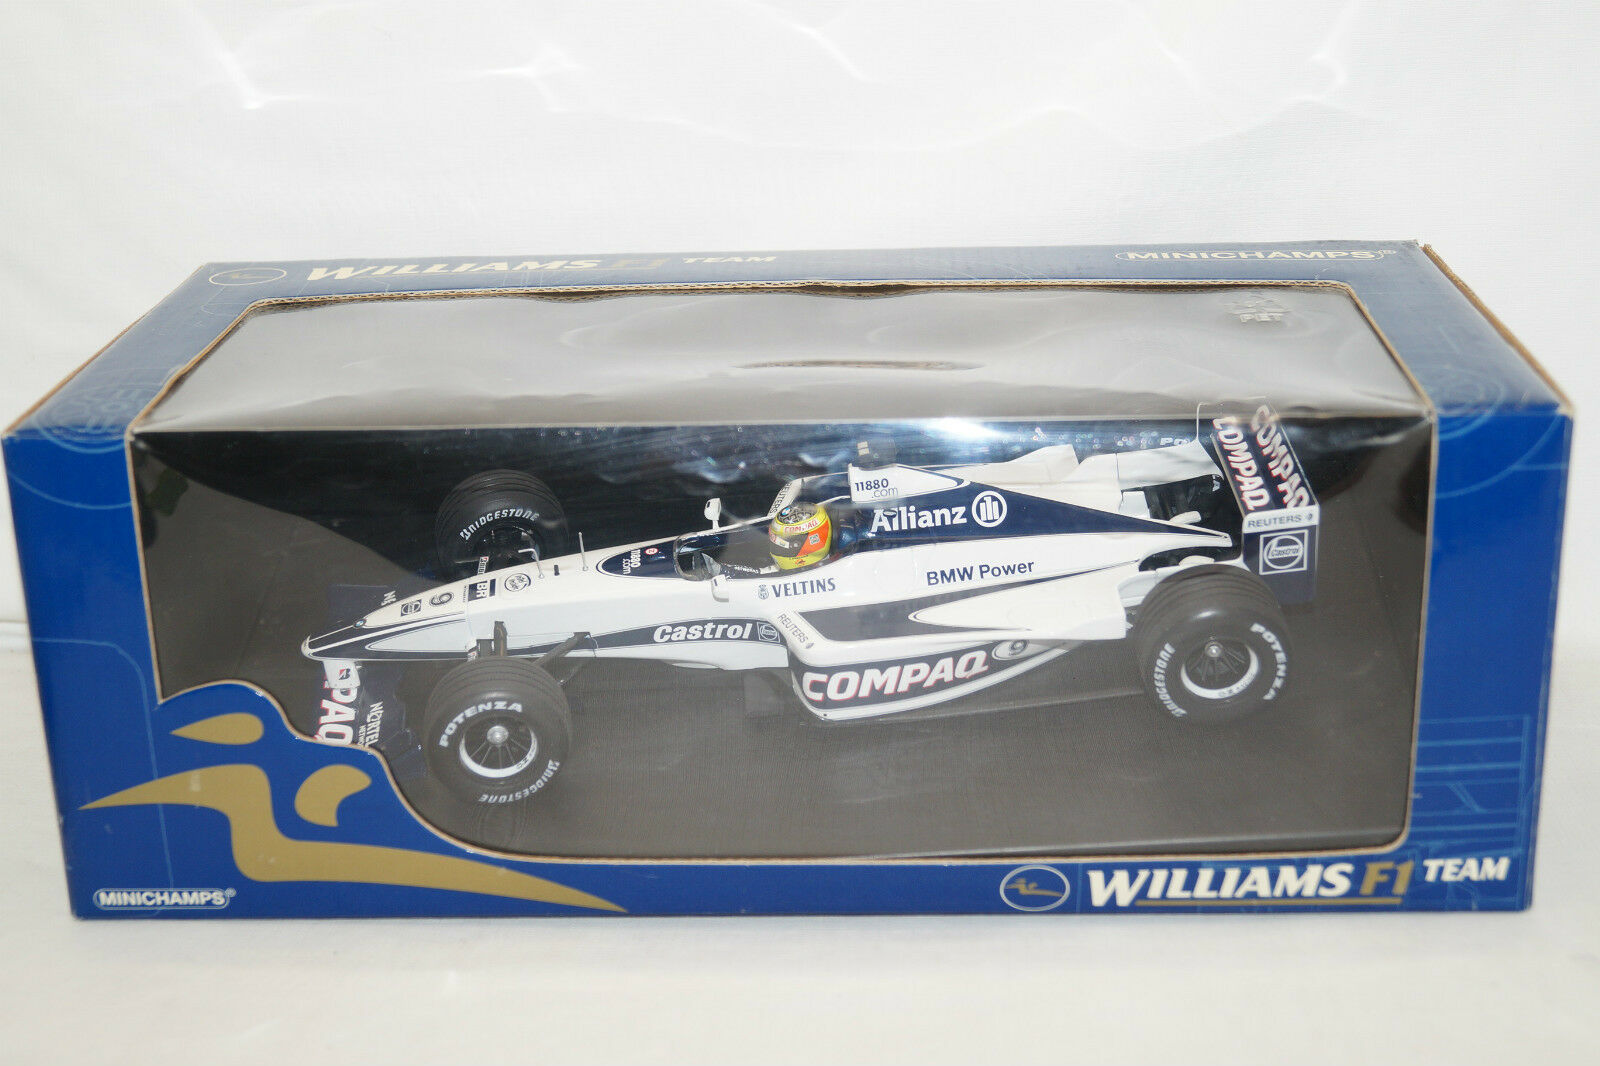 Minichamps Williams  9 BMW FW 22 R. schumcher 2000 1 18